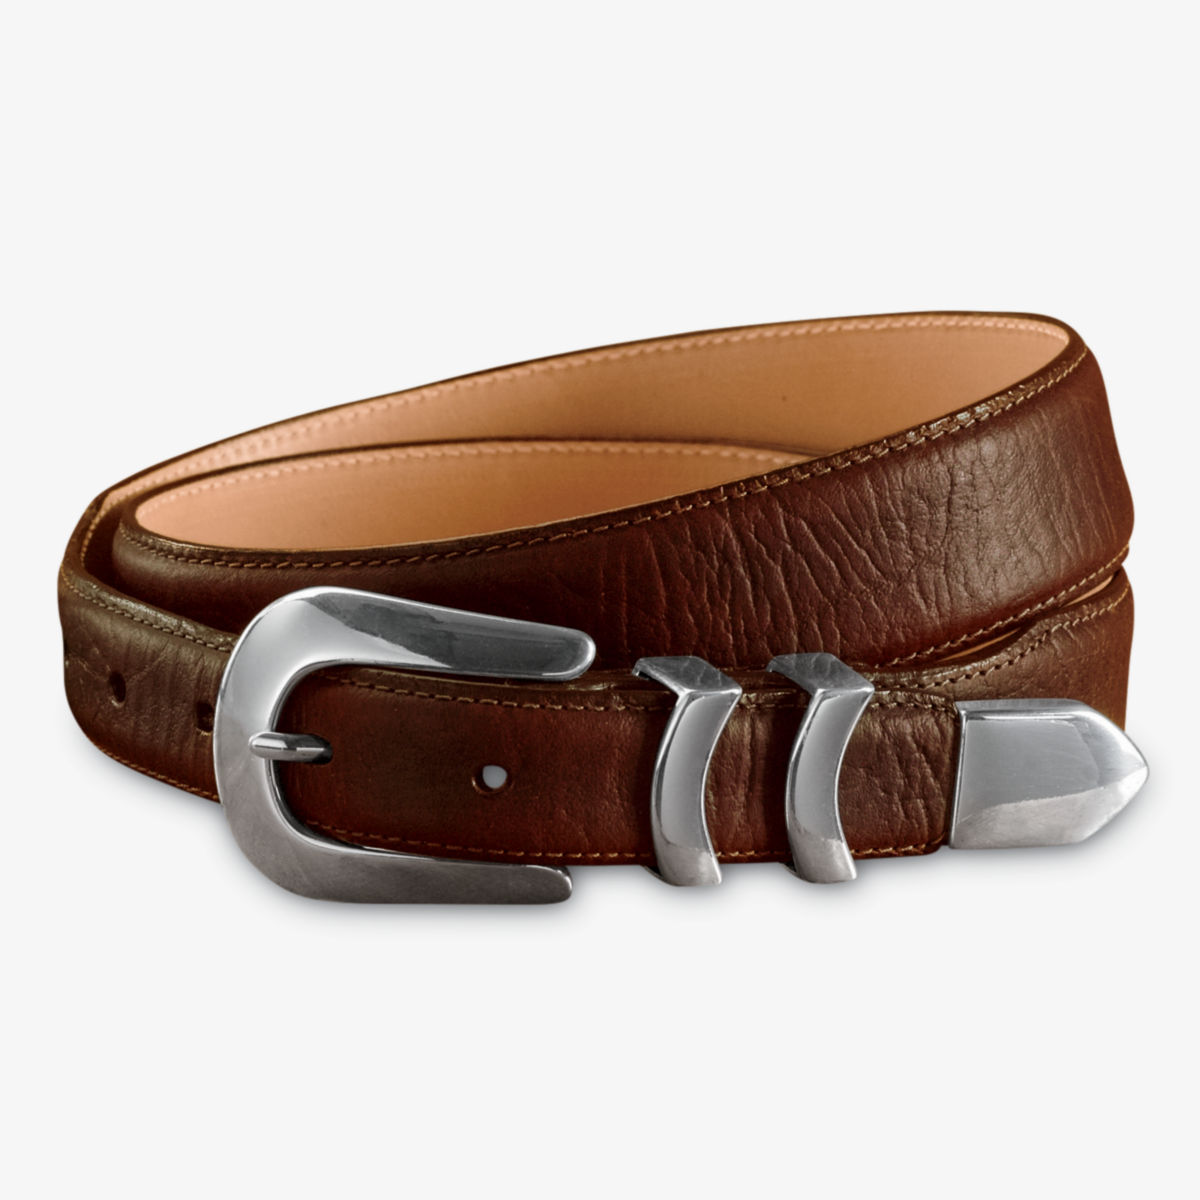 Bison Tapered-Edge Belt with Silver Buckle - BROWNimage number 0